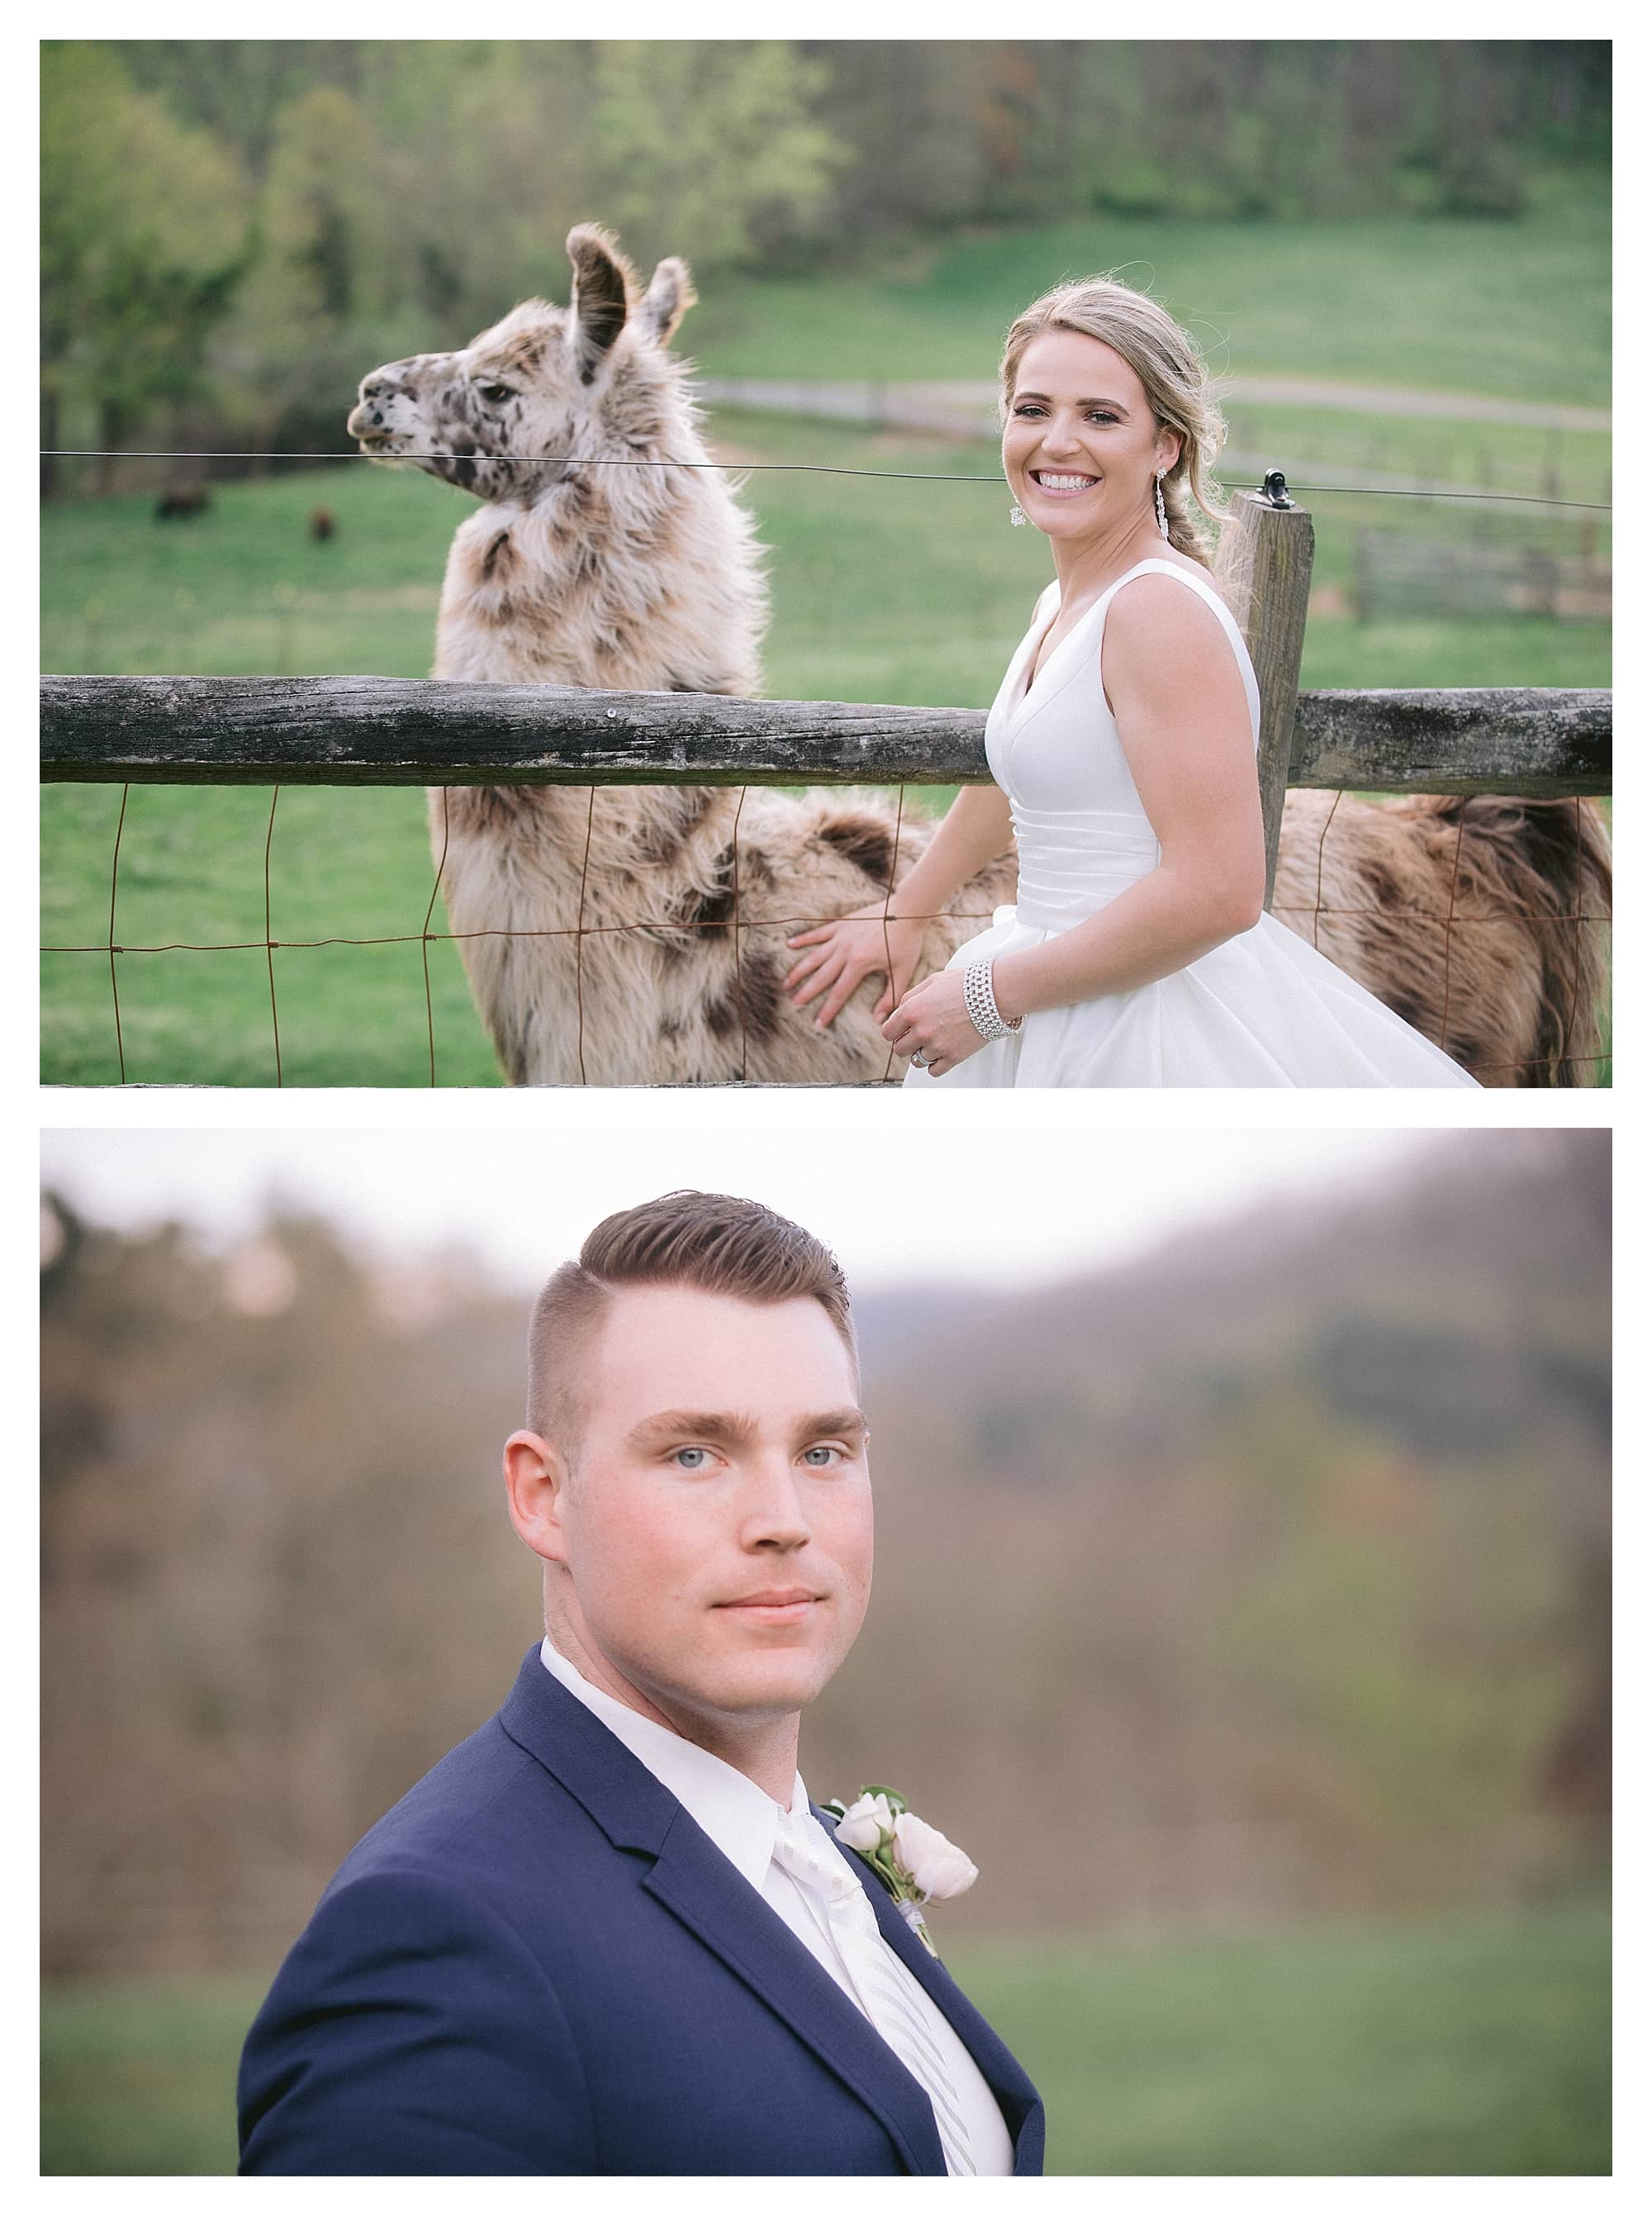 Bride and groom close up photos in grassy field